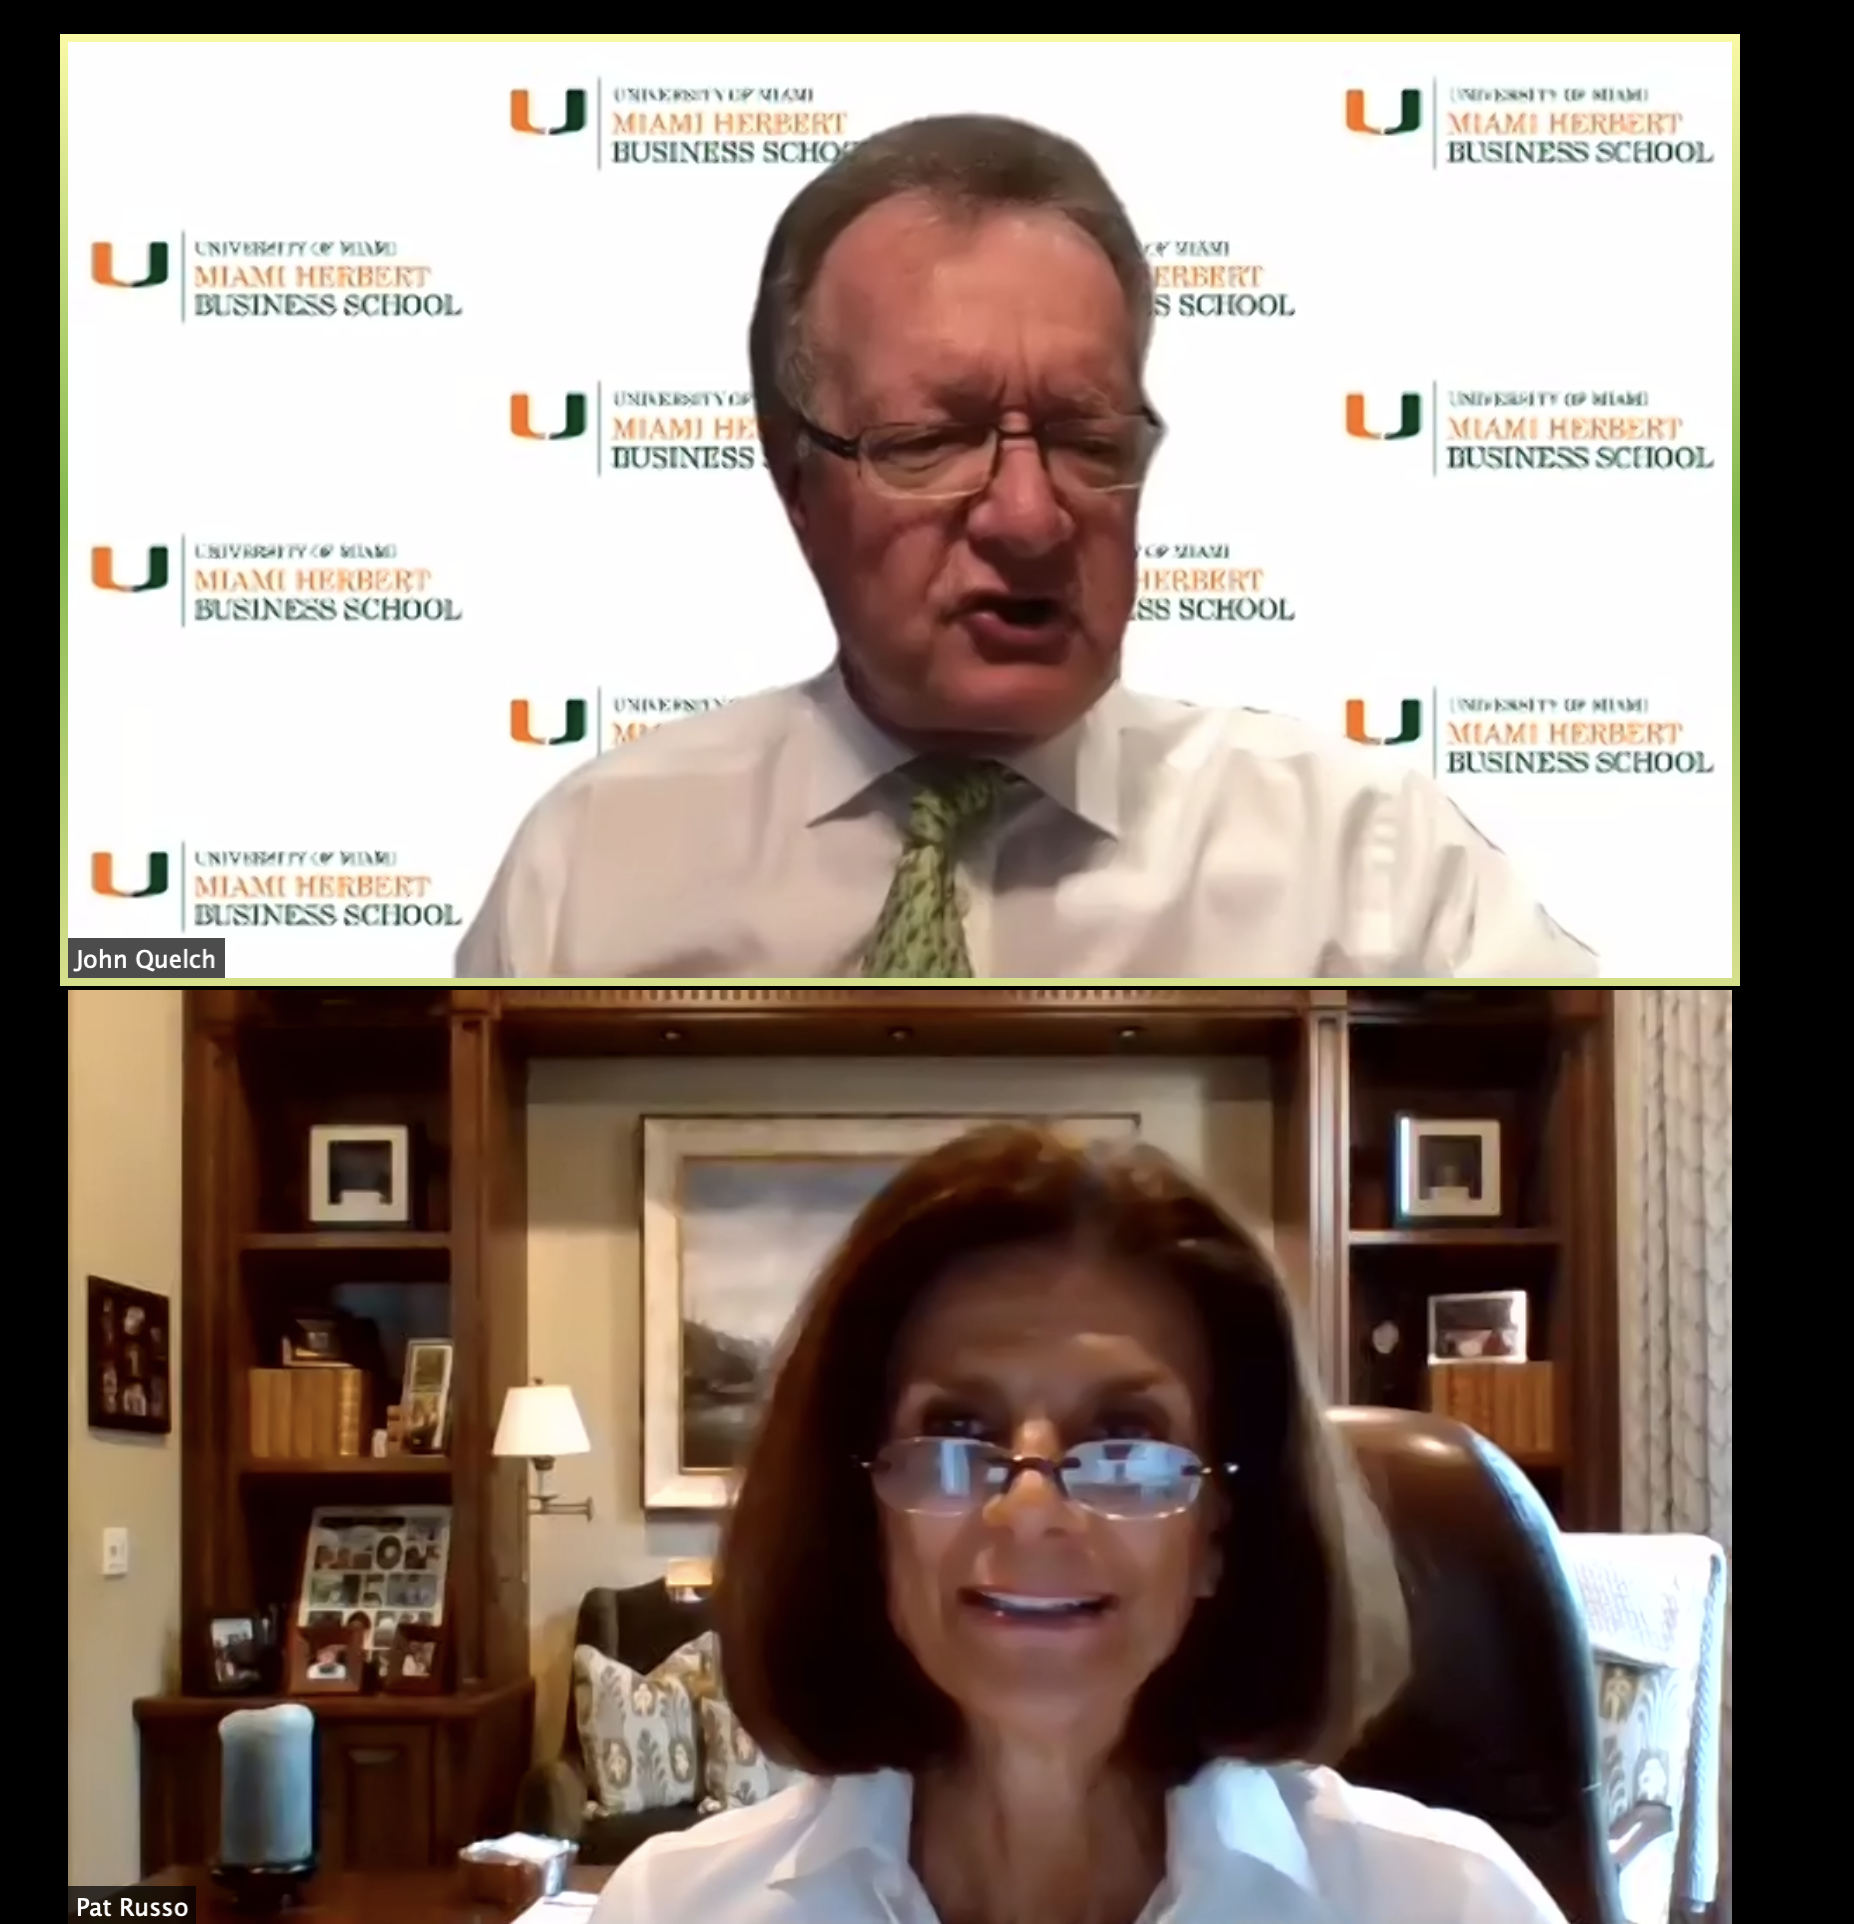 Screenshot of virtual lecture featuring Pat Russo with Miami Herbert Dean John Quelch